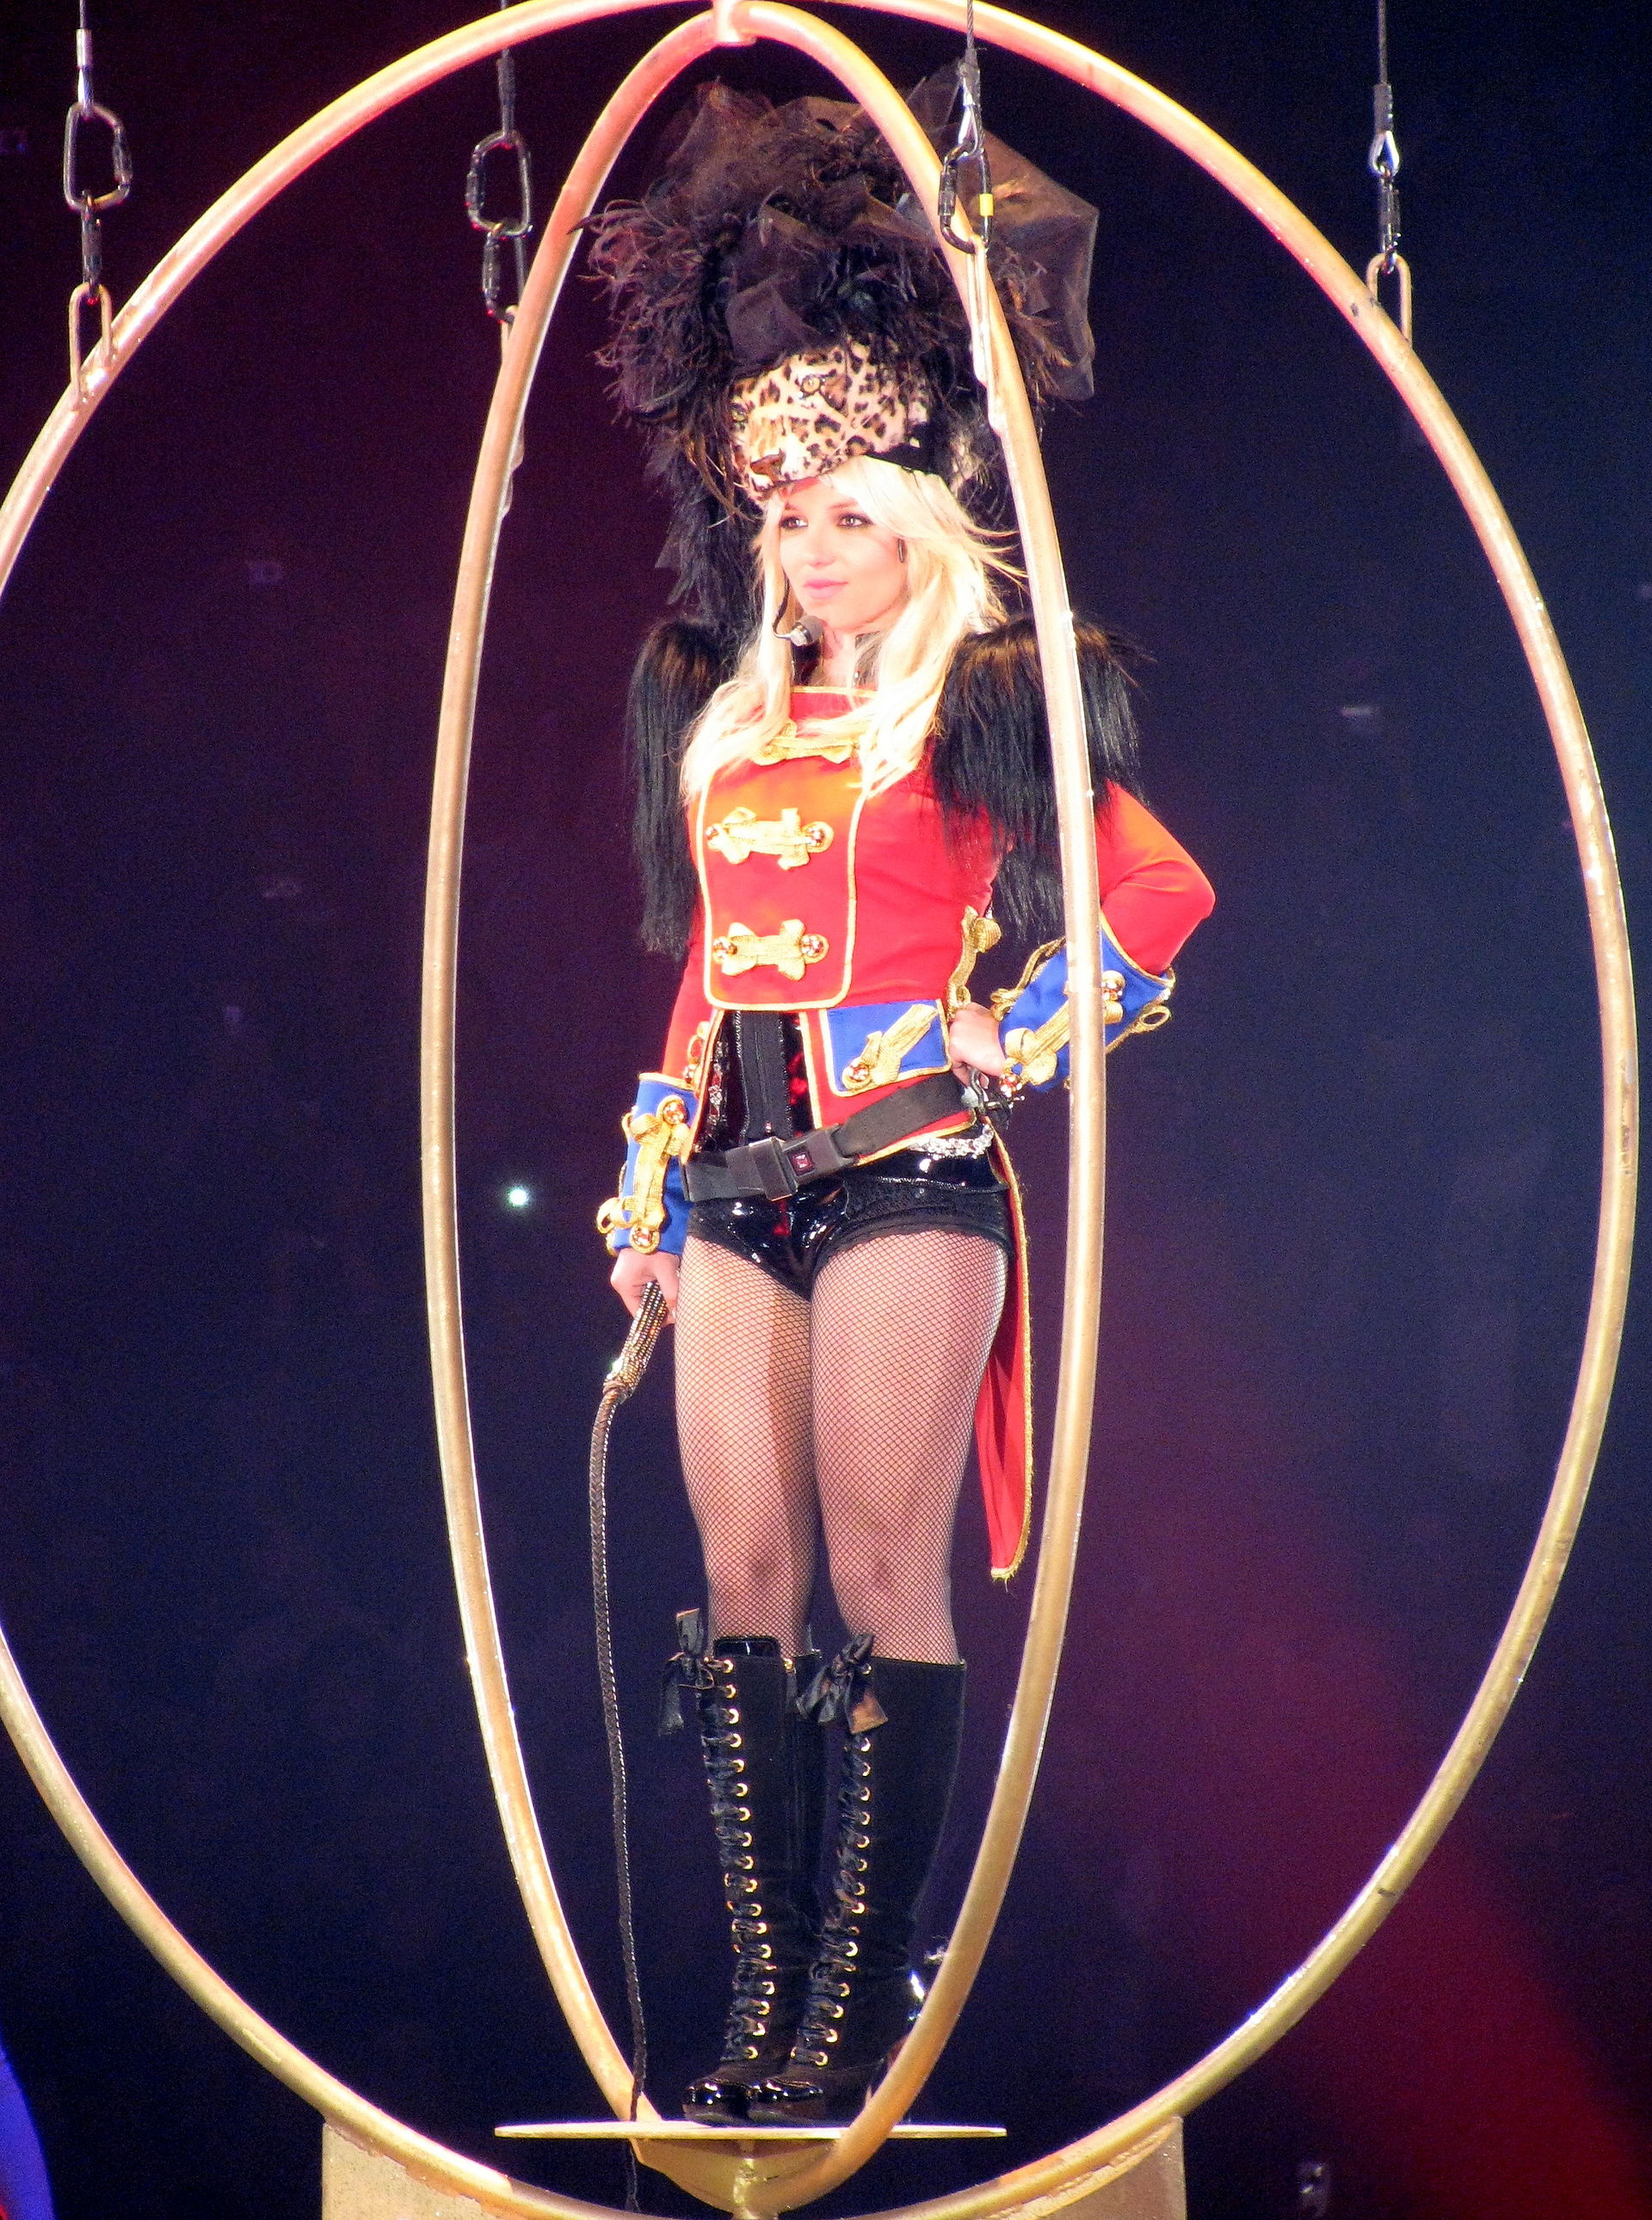 All britney spears circus tour vagina accept. The